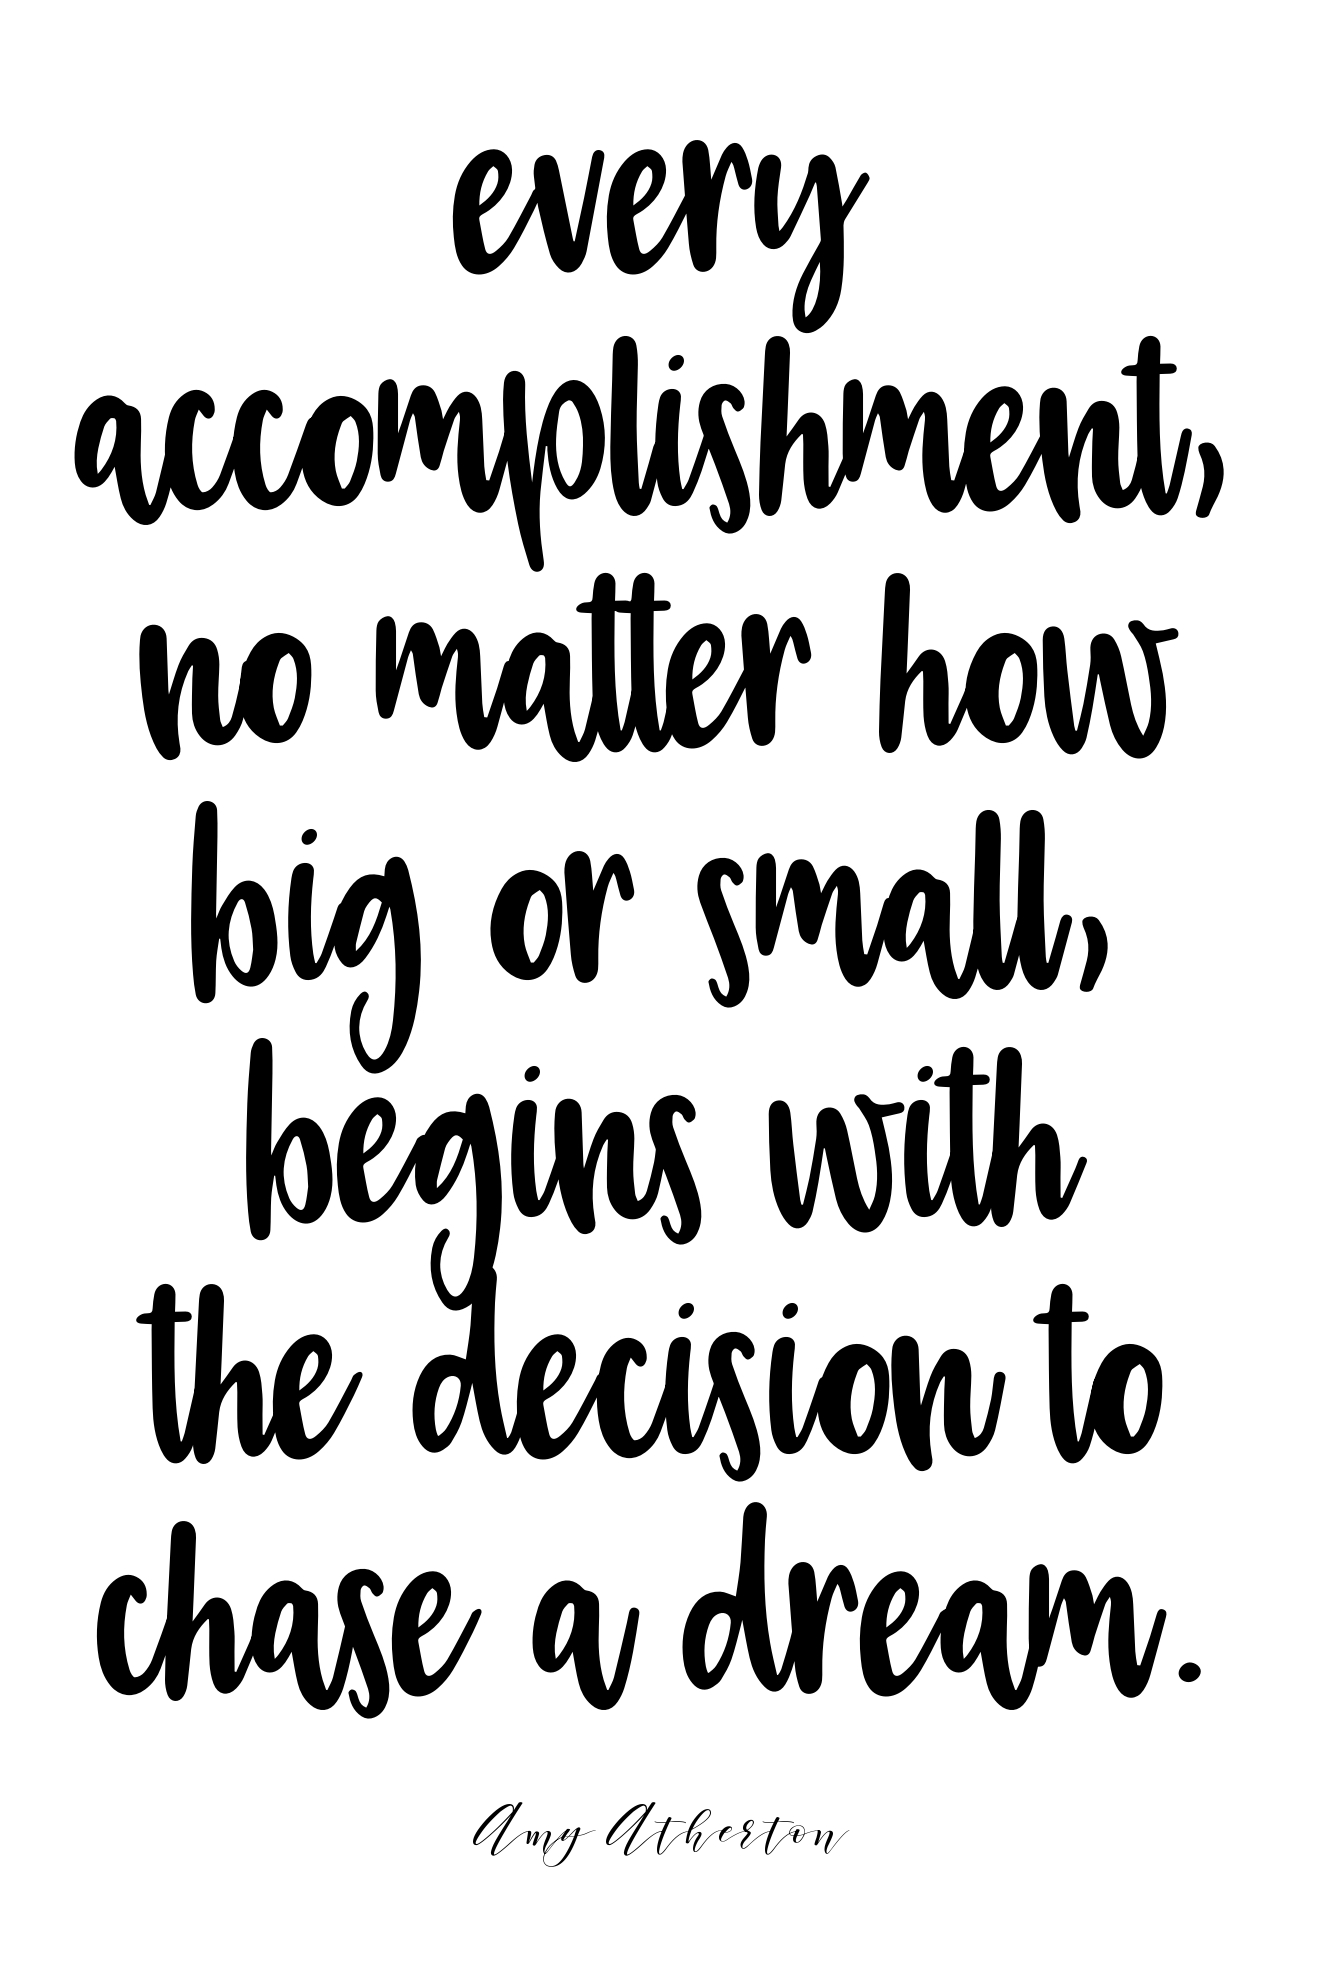 Every accomplishment, no matter how big or small, begins with the decision to chase a dream. @amybakeshealthy